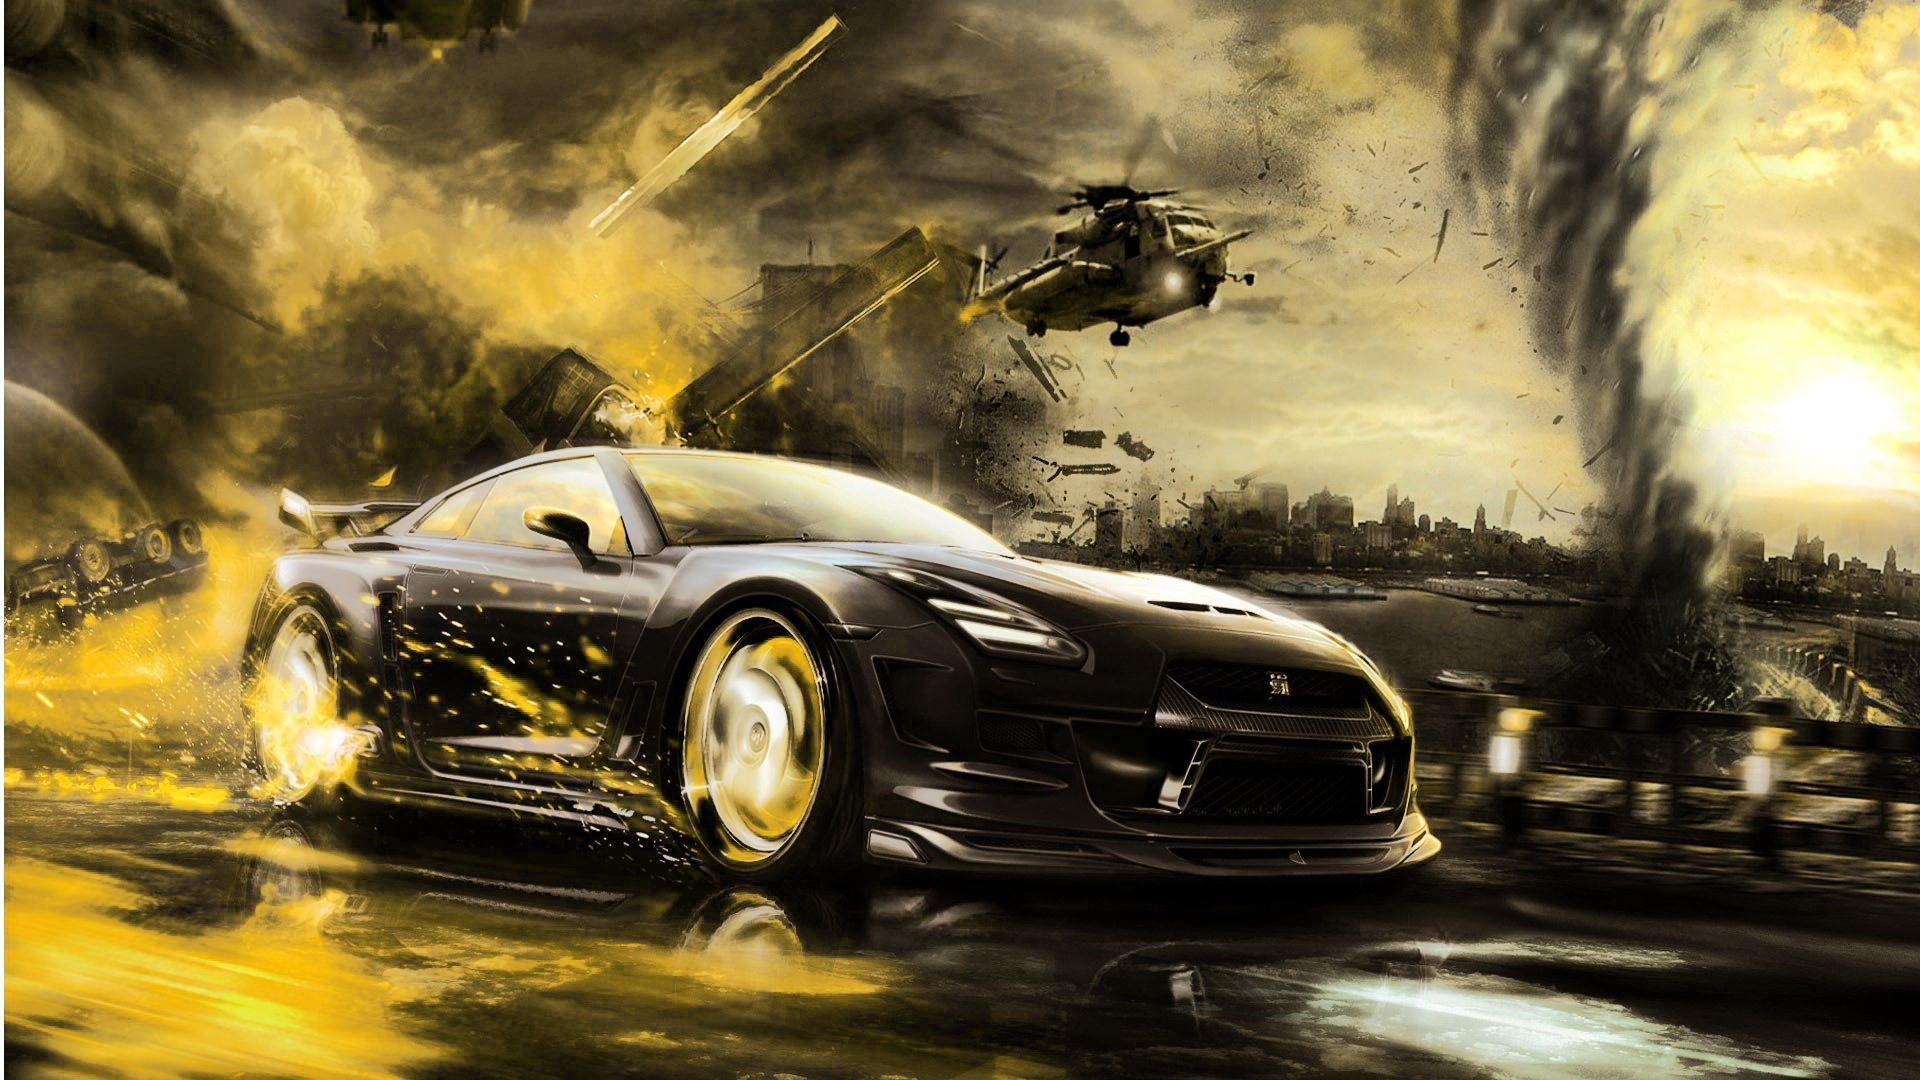 Cool Old Cars Wallpapers 185 Hd Car Backgrounds Wallpapers Images Pictures